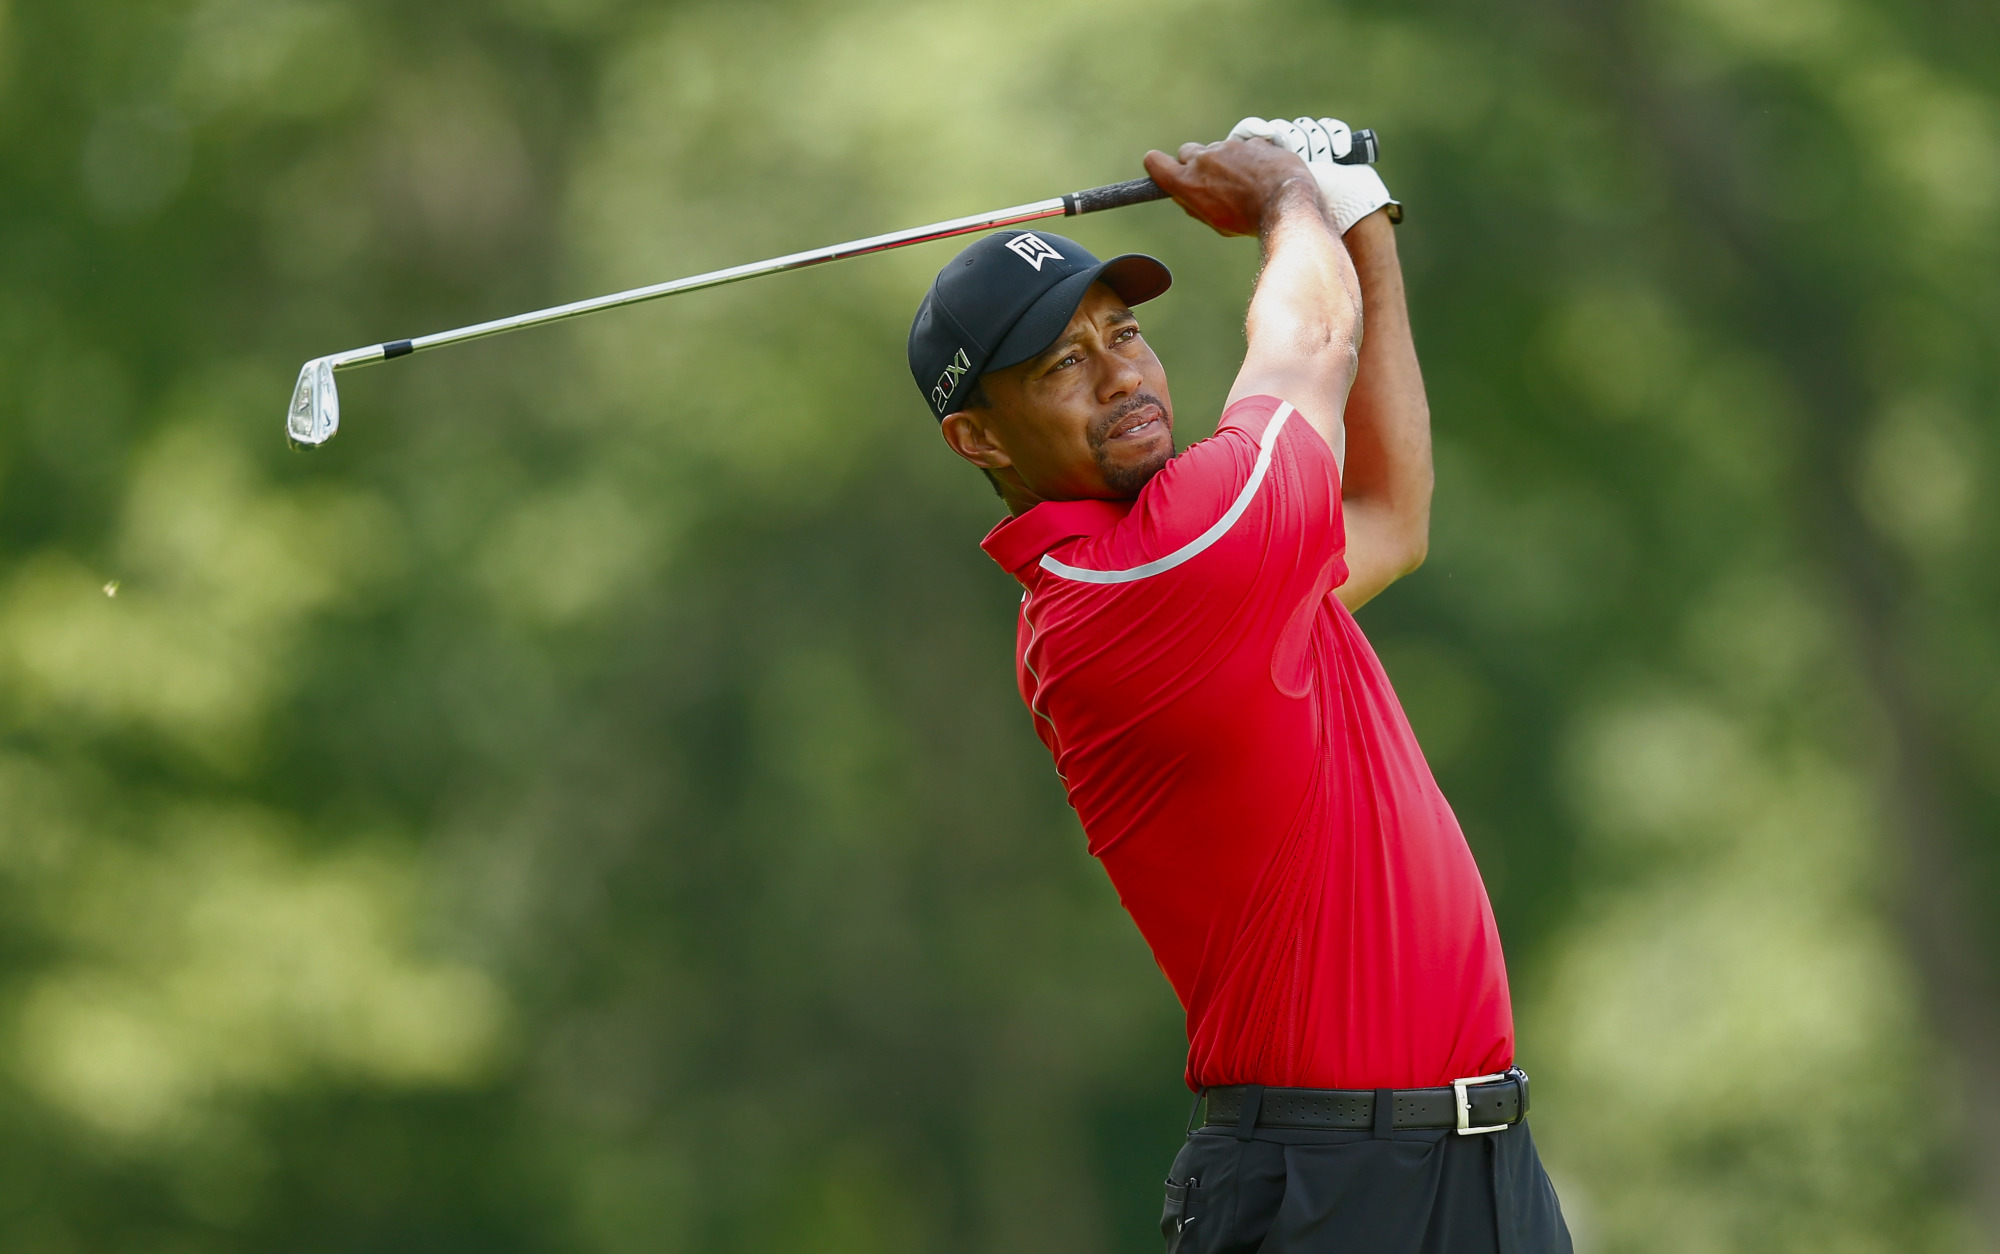 tiger woods supports mickelson u0026 39 s decision to play in fewer